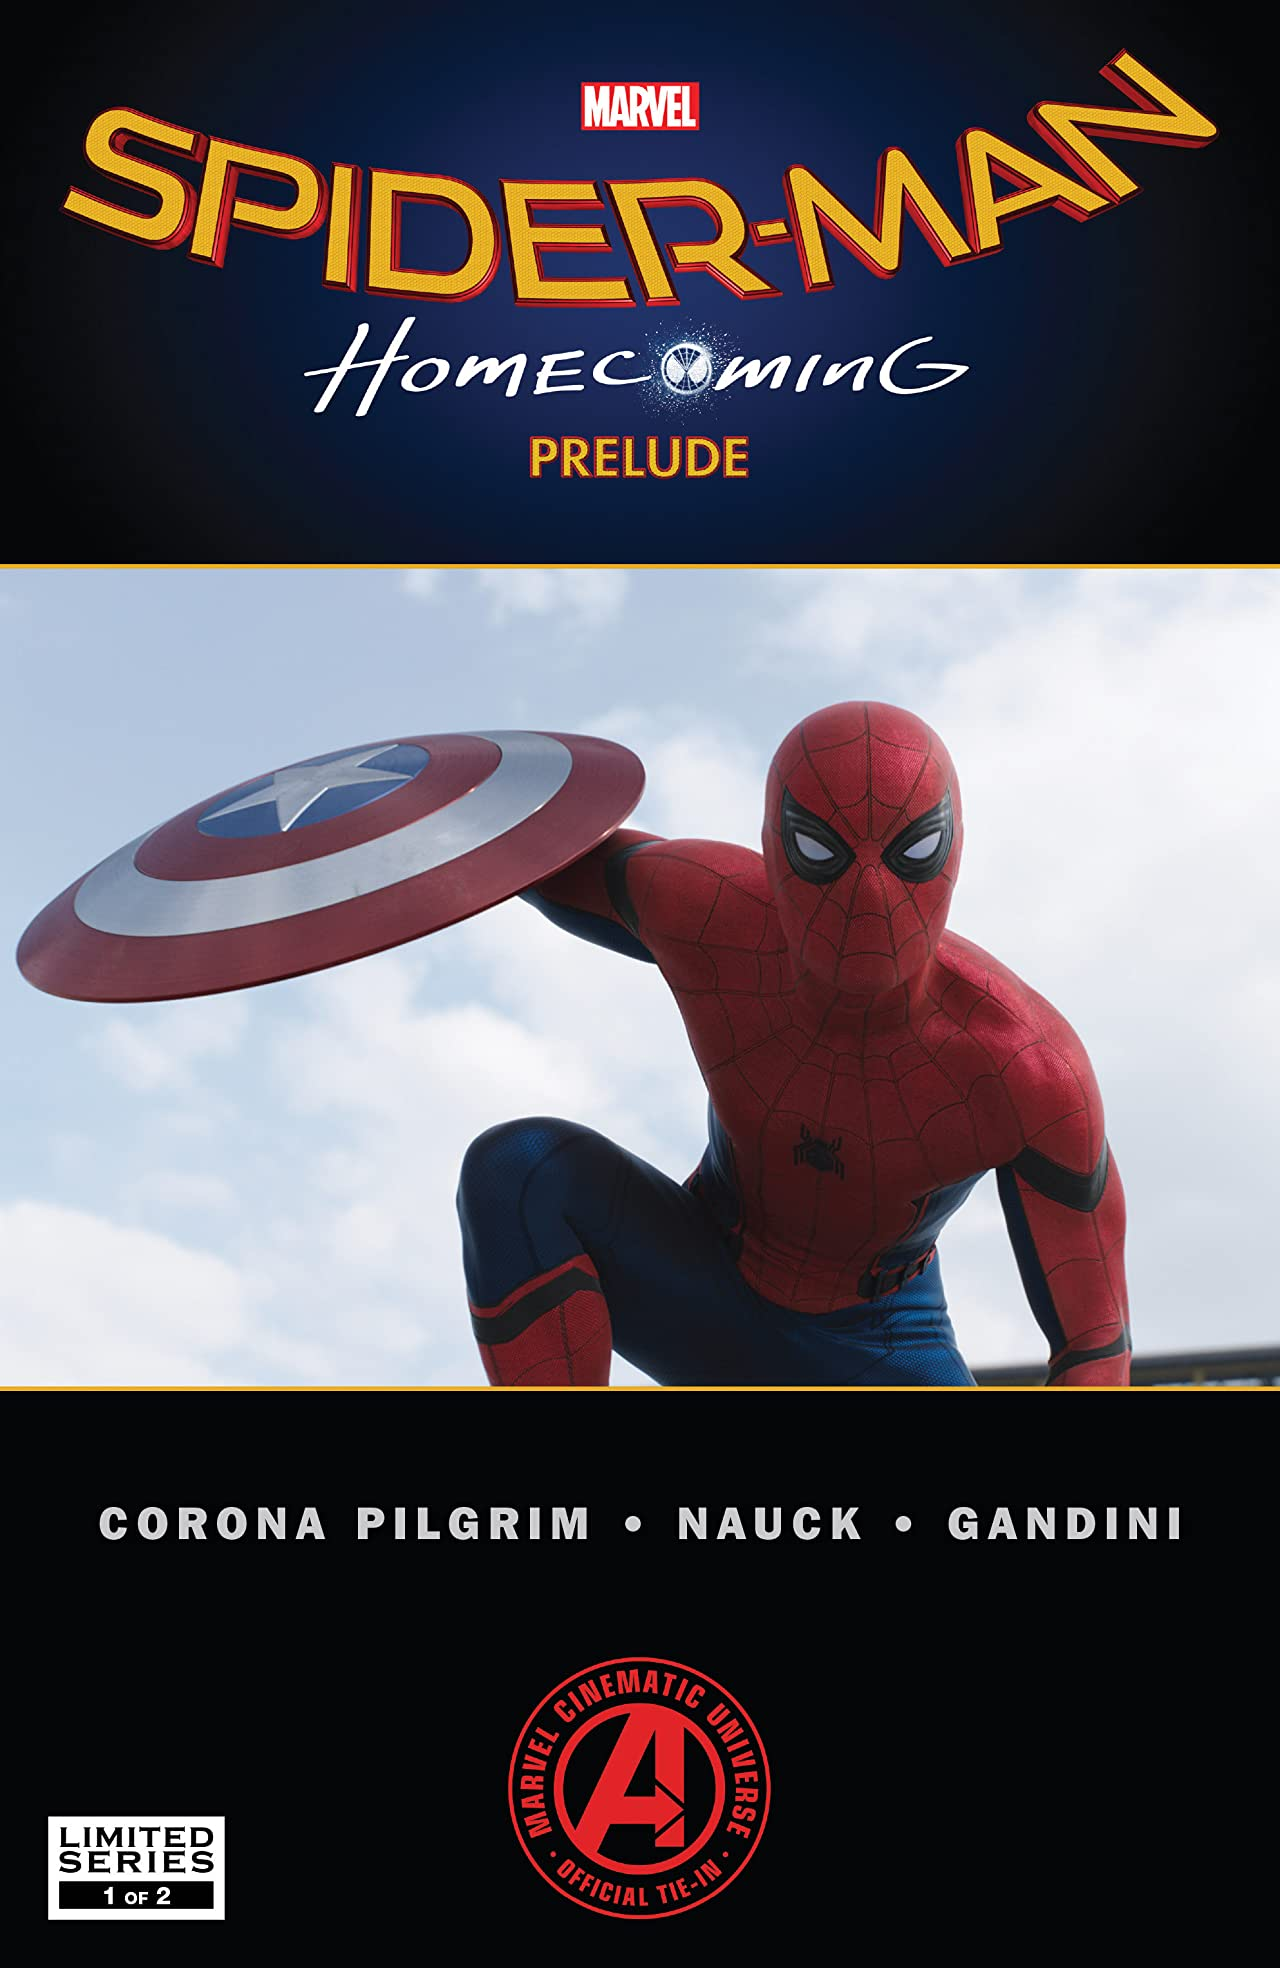 Spider-Man: Homecoming Prelude (2017) #1 (of 2)